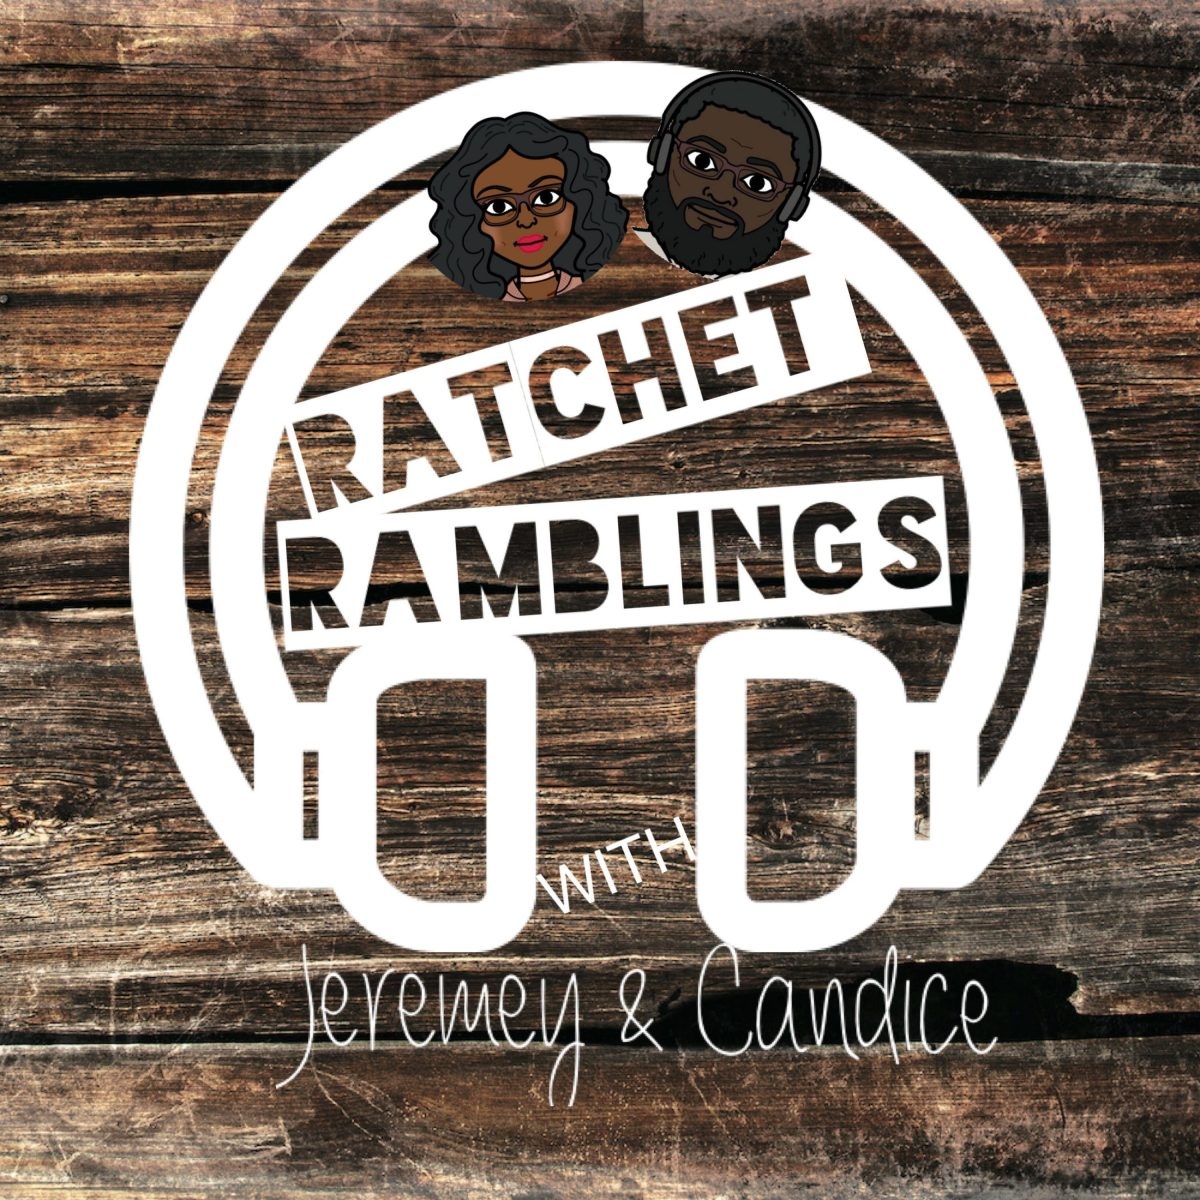 Ratchet Ramblings Episode 18: Truly Trash